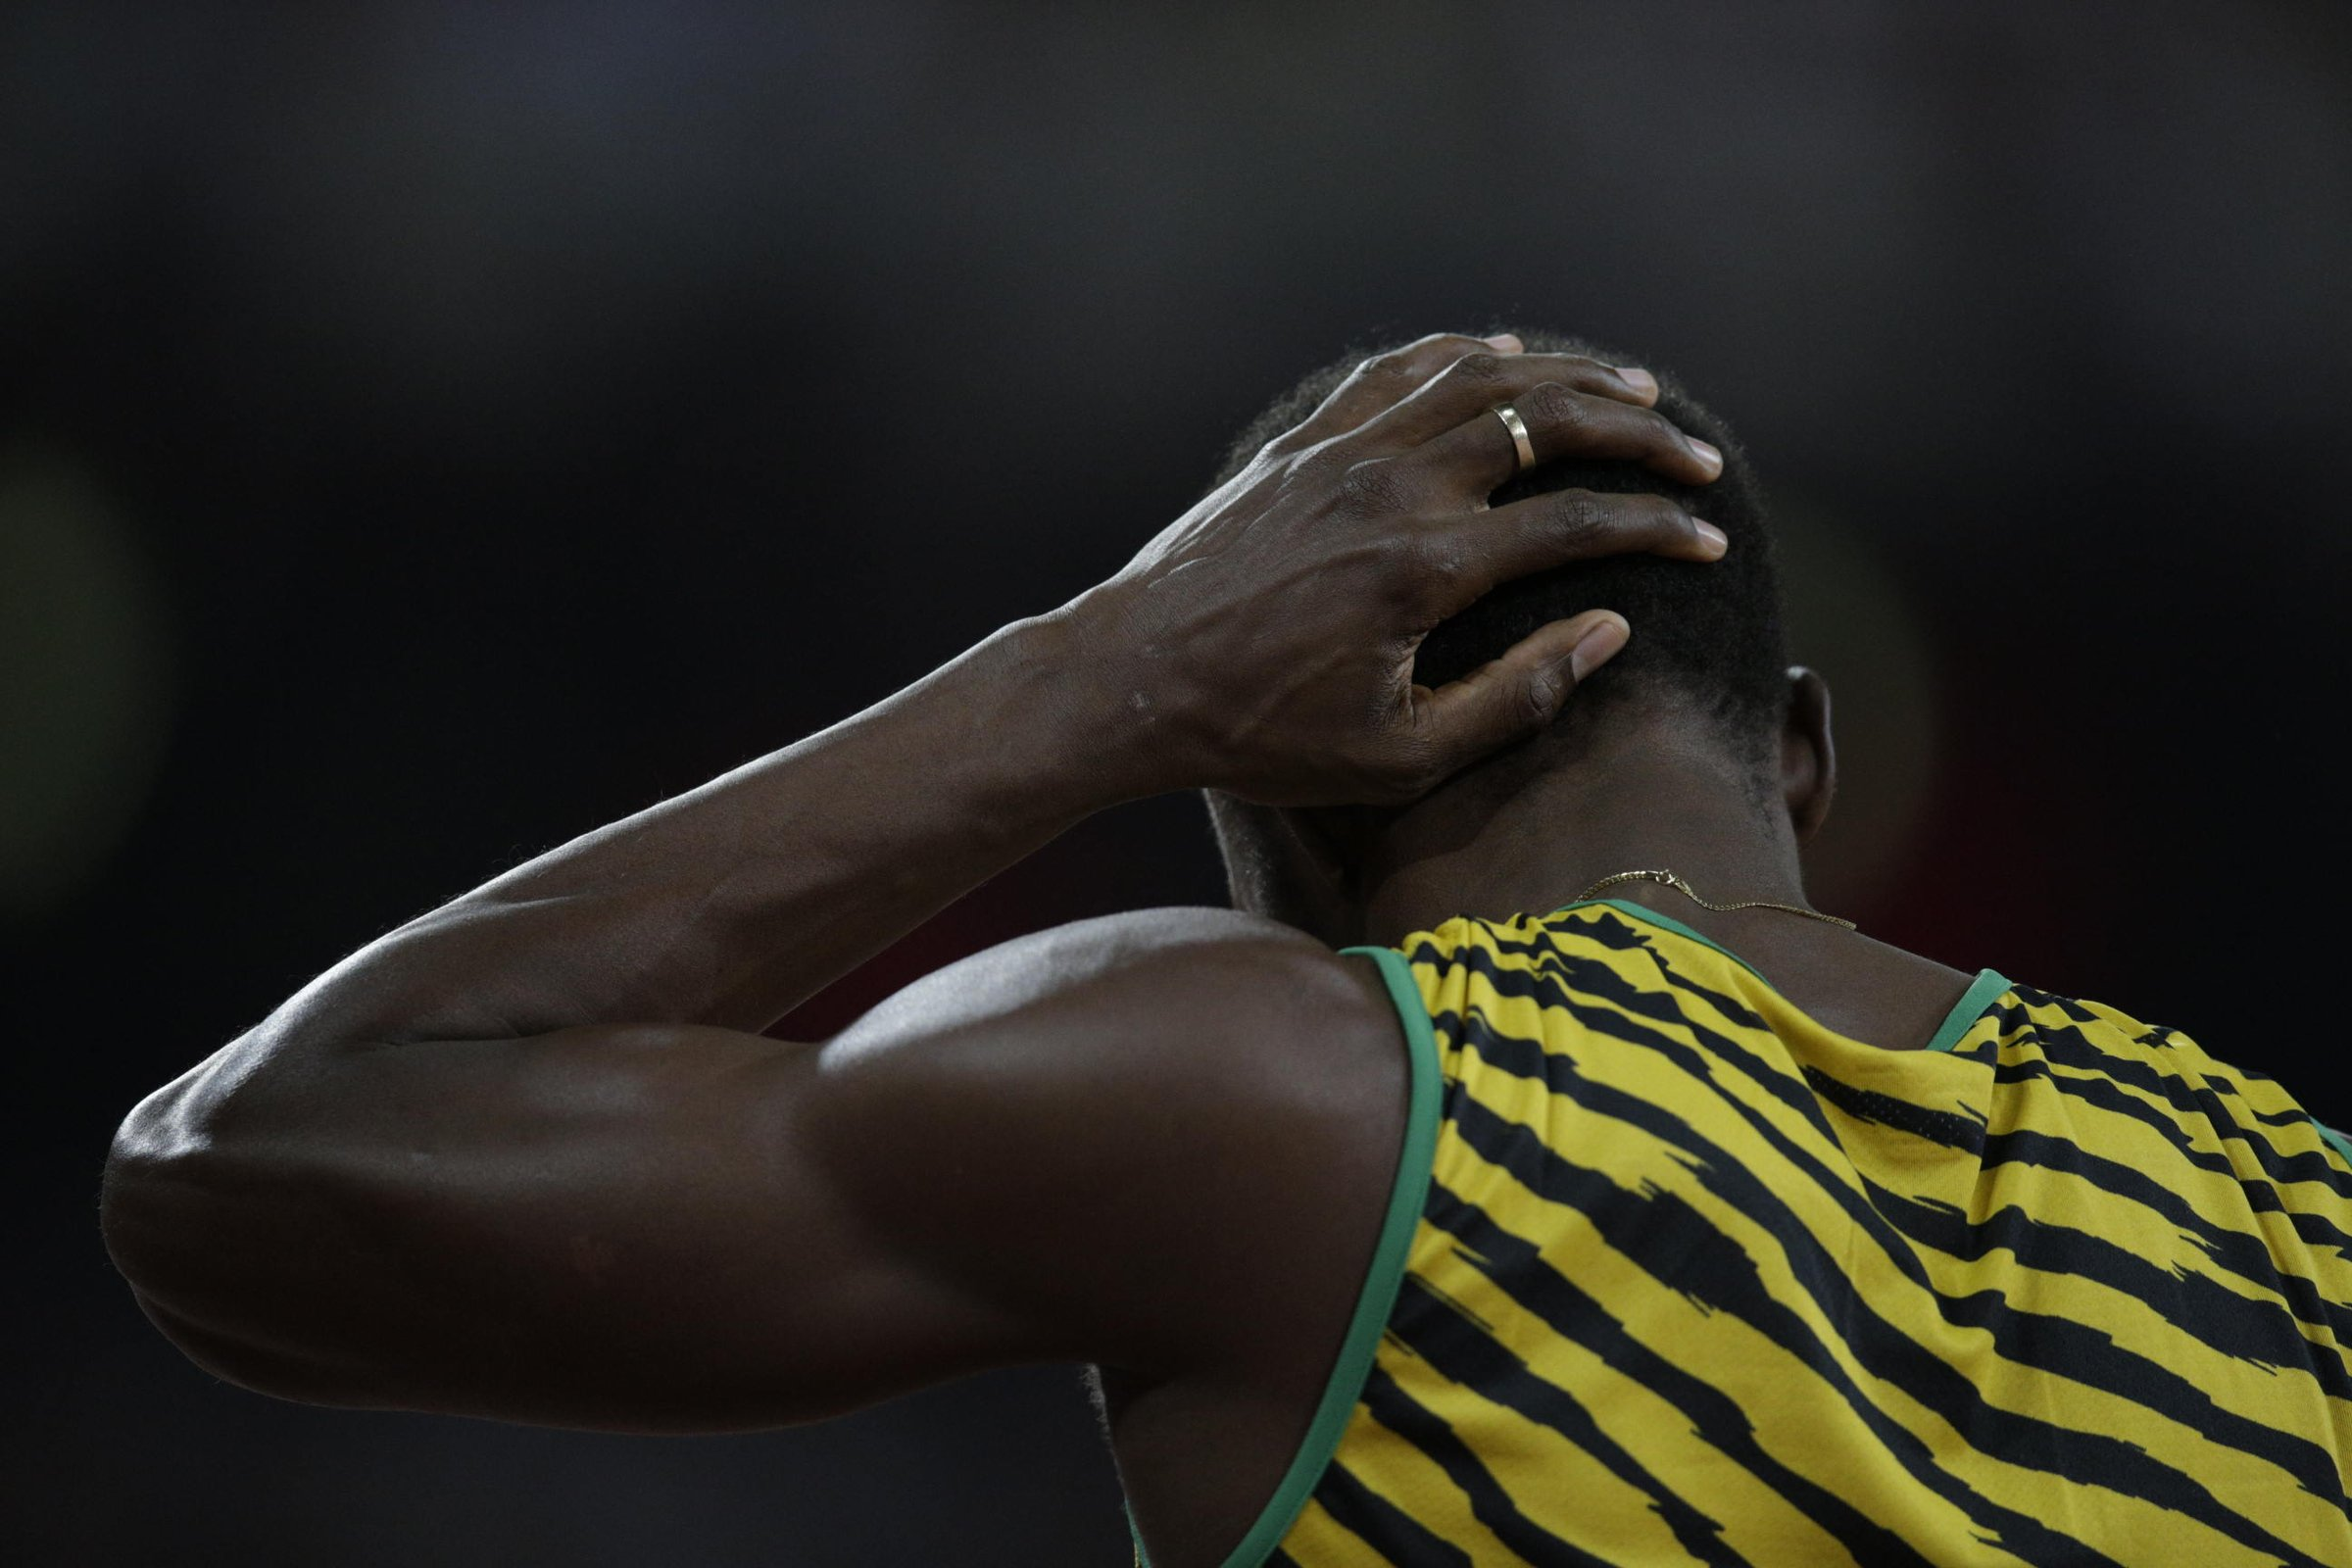 Another round was no sweat for Usain Bolt (JAM) in the 200-meter run.